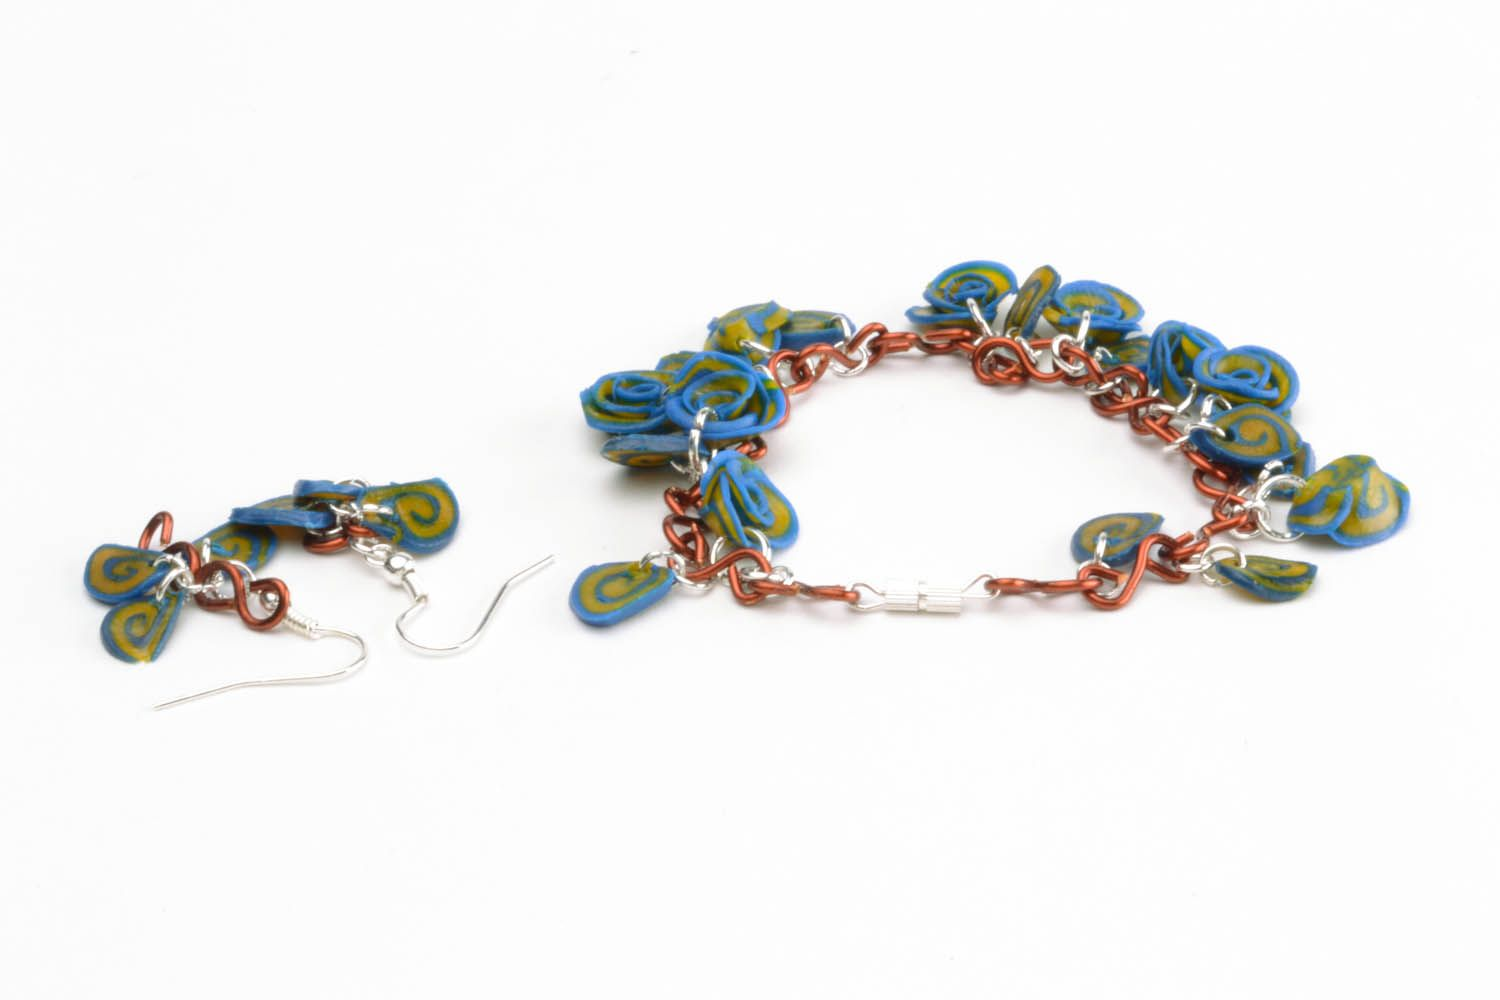 Polymer clay earrings and bracelet photo 3